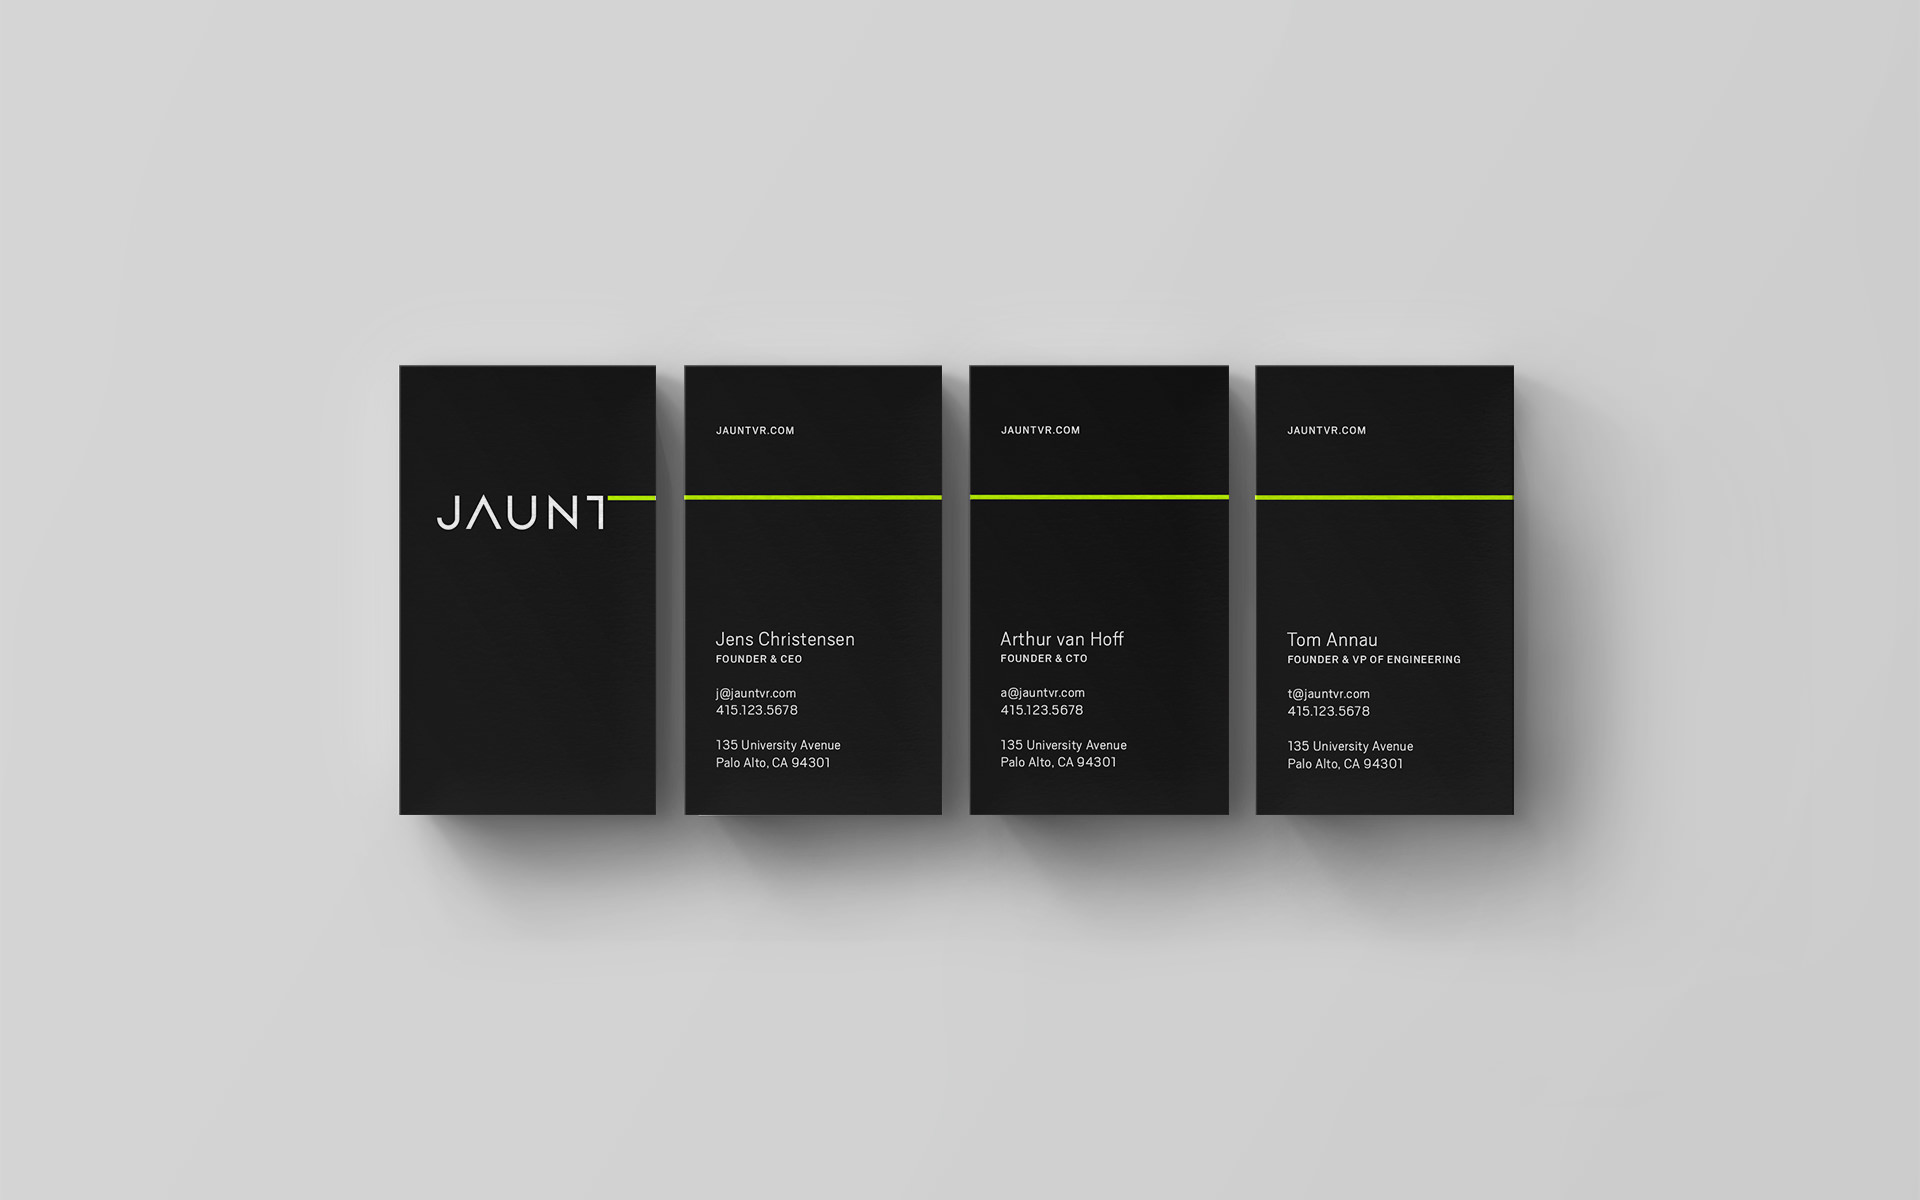 jaunt_businesscard_1